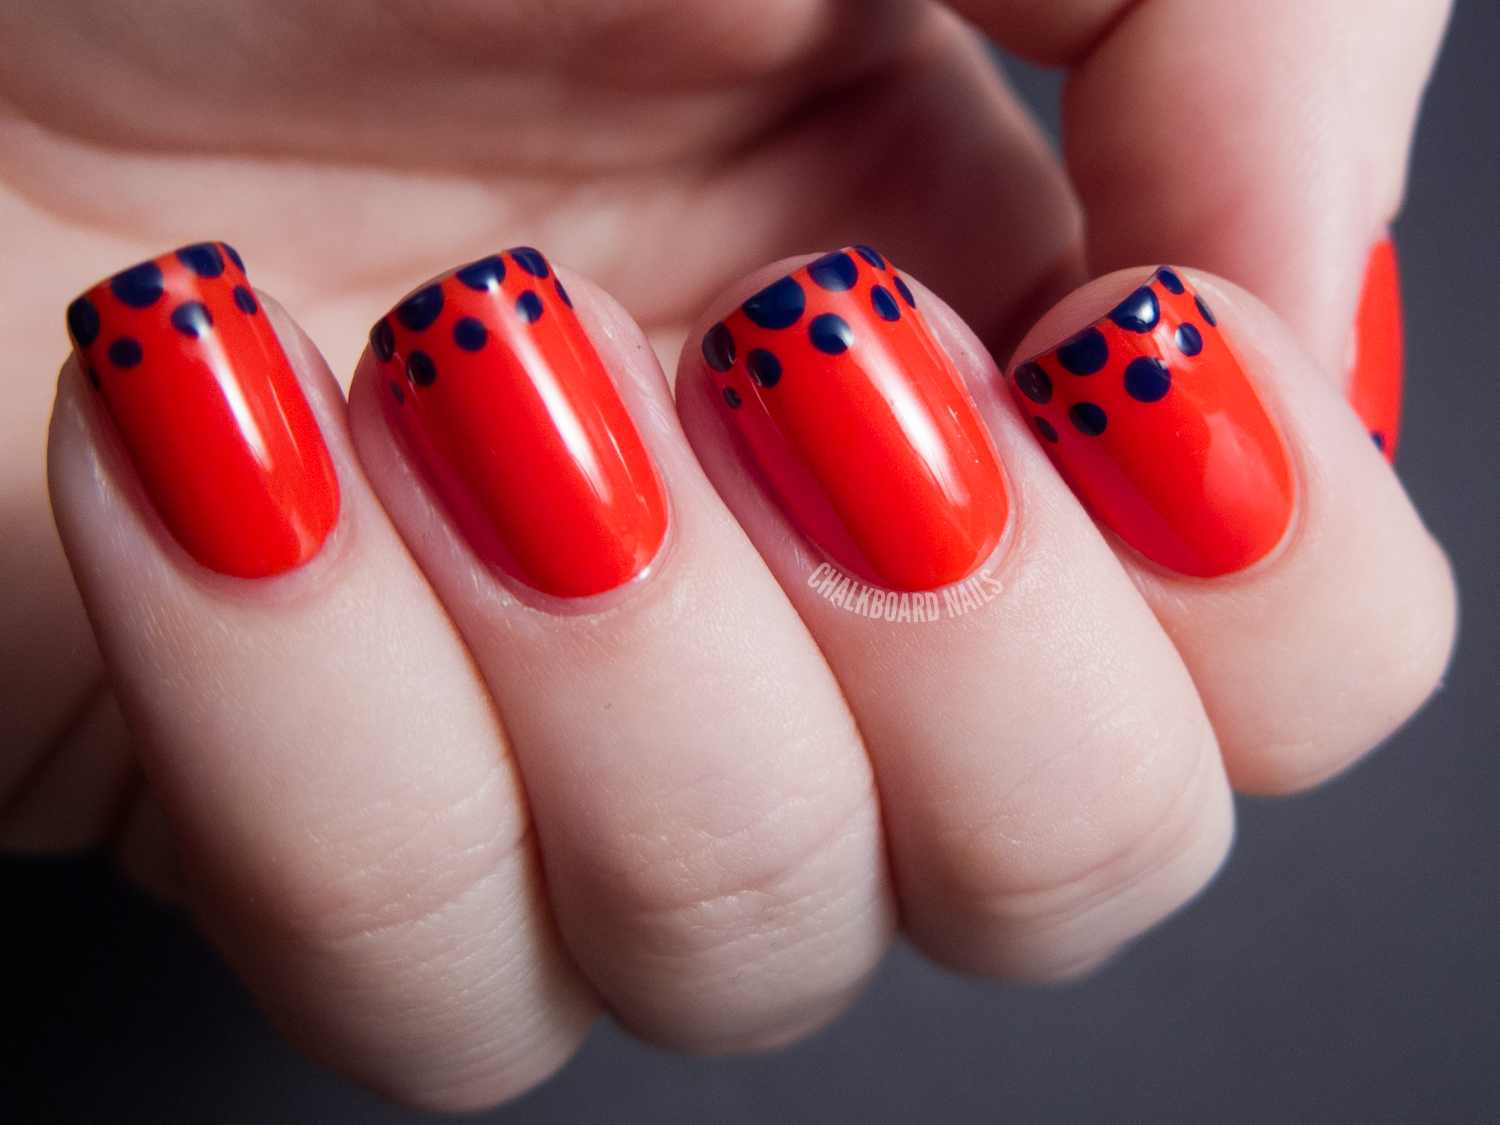 Nail art photos download gallery nail art and nail design ideas photo collection download cute nail art nail arts images free download clipart download nail art gallery prinsesfo Image collections